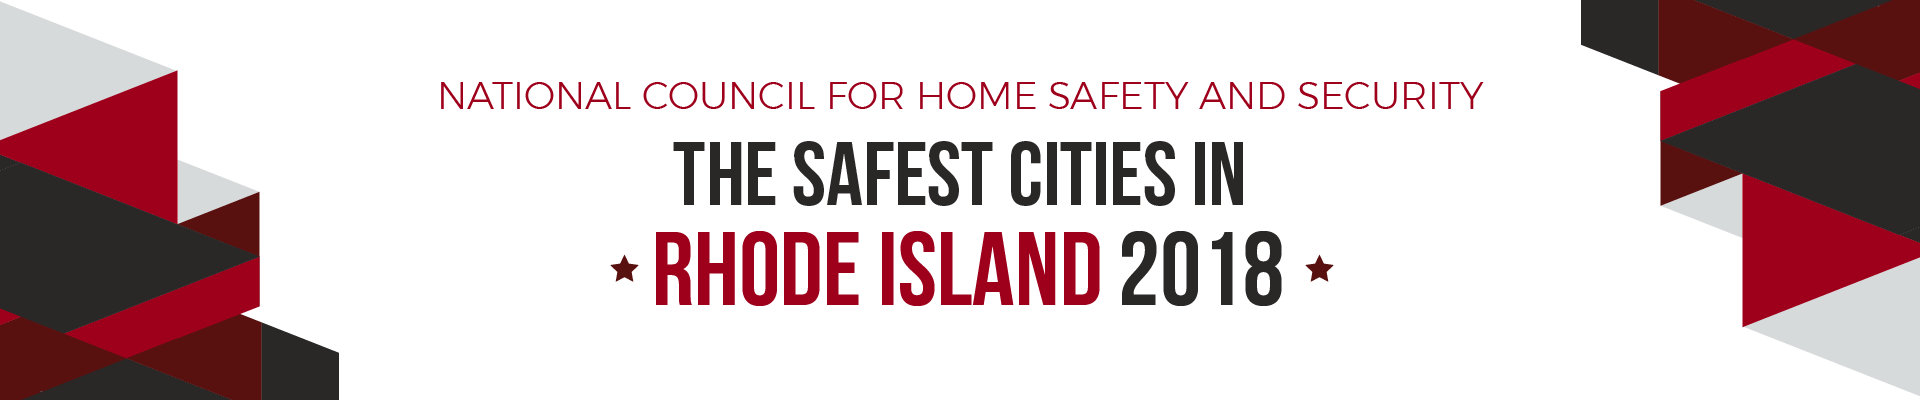 safe cities rhode island 2018